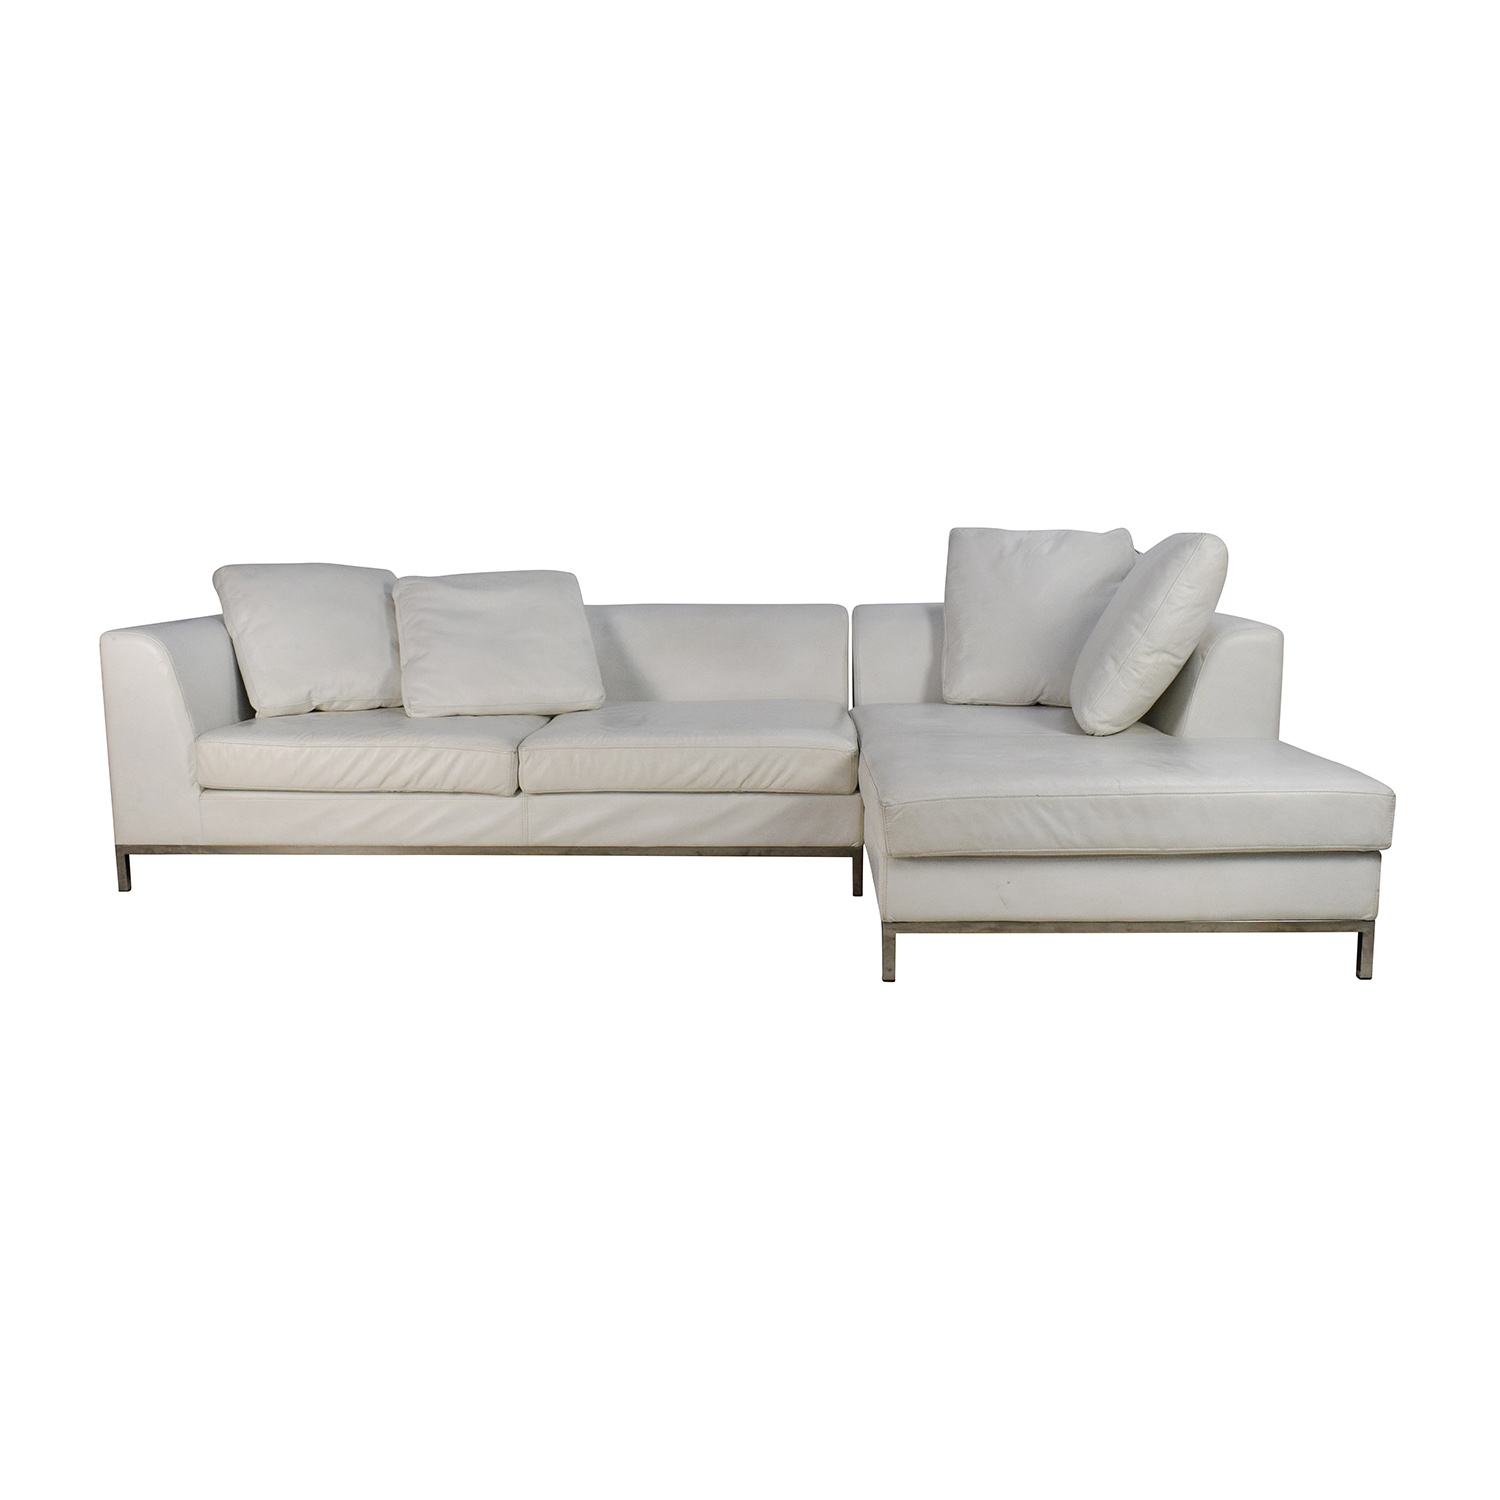 White Leather Sectional Couch used